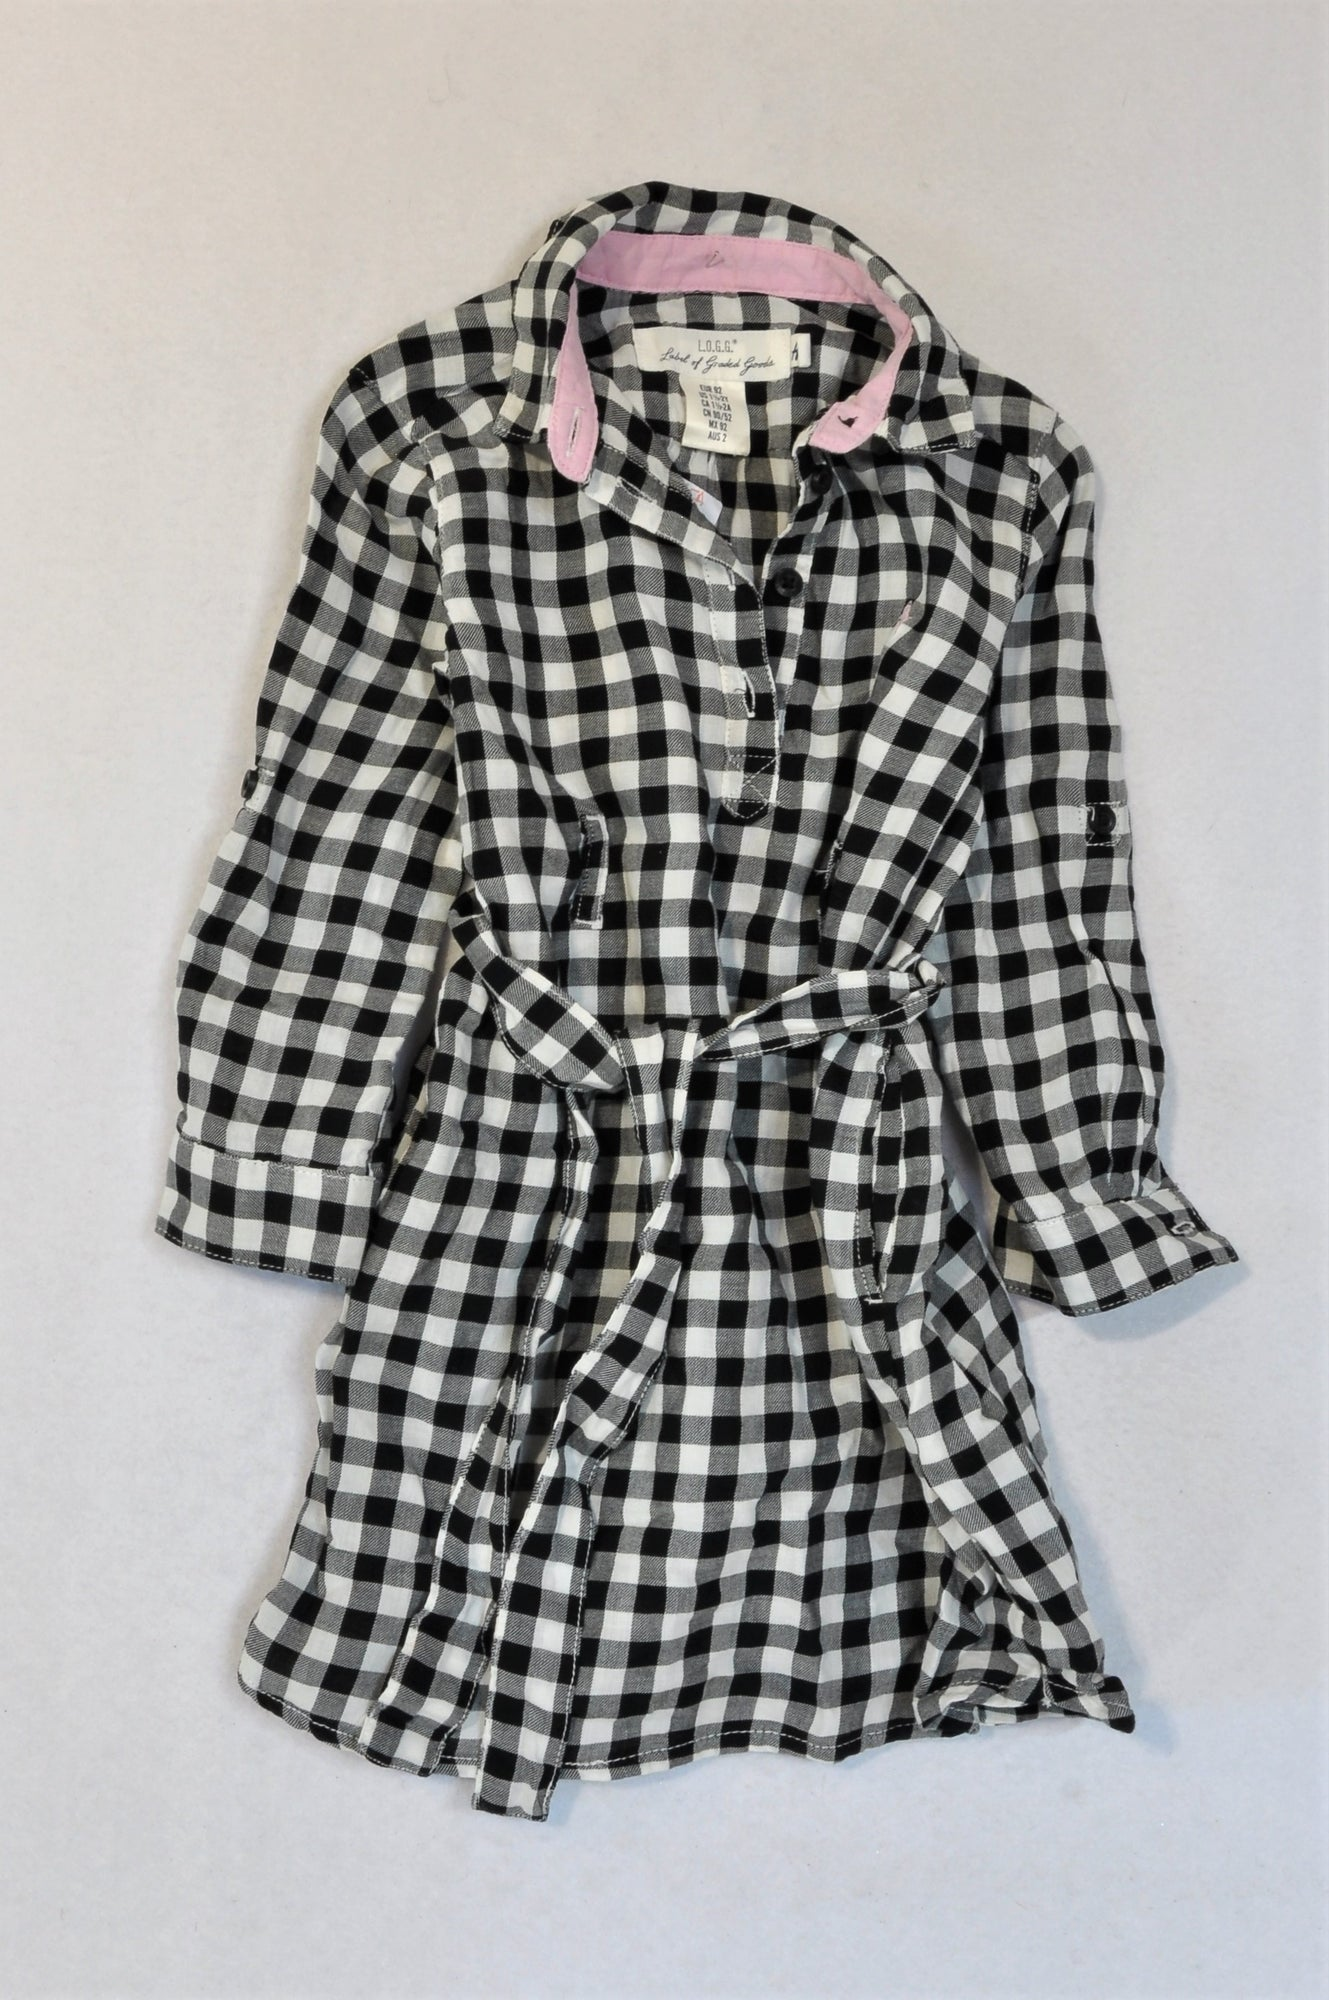 H&M Black & White Check Shirt Dress Girls 18-24 months